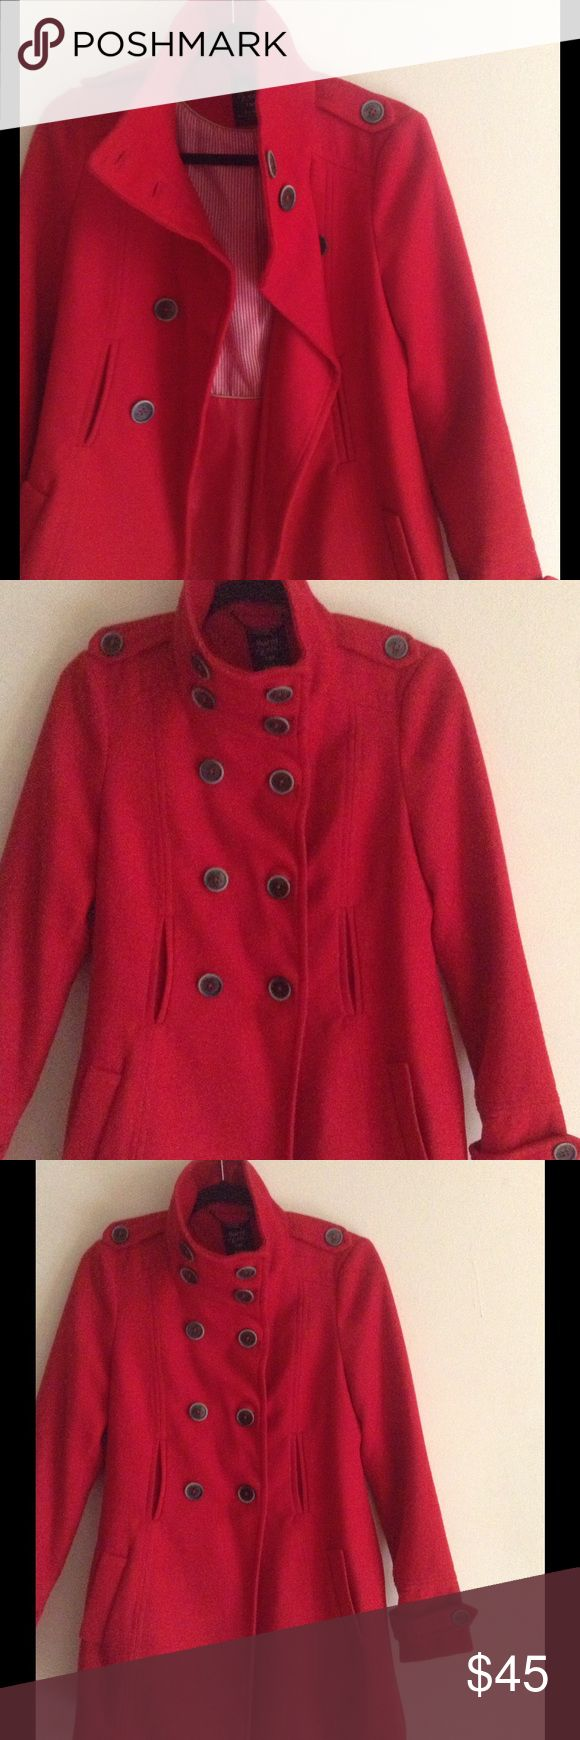 Zara Winter Coat Zara Winter Coat- No Flaws-Excellent condition! Zara Jackets & Coats